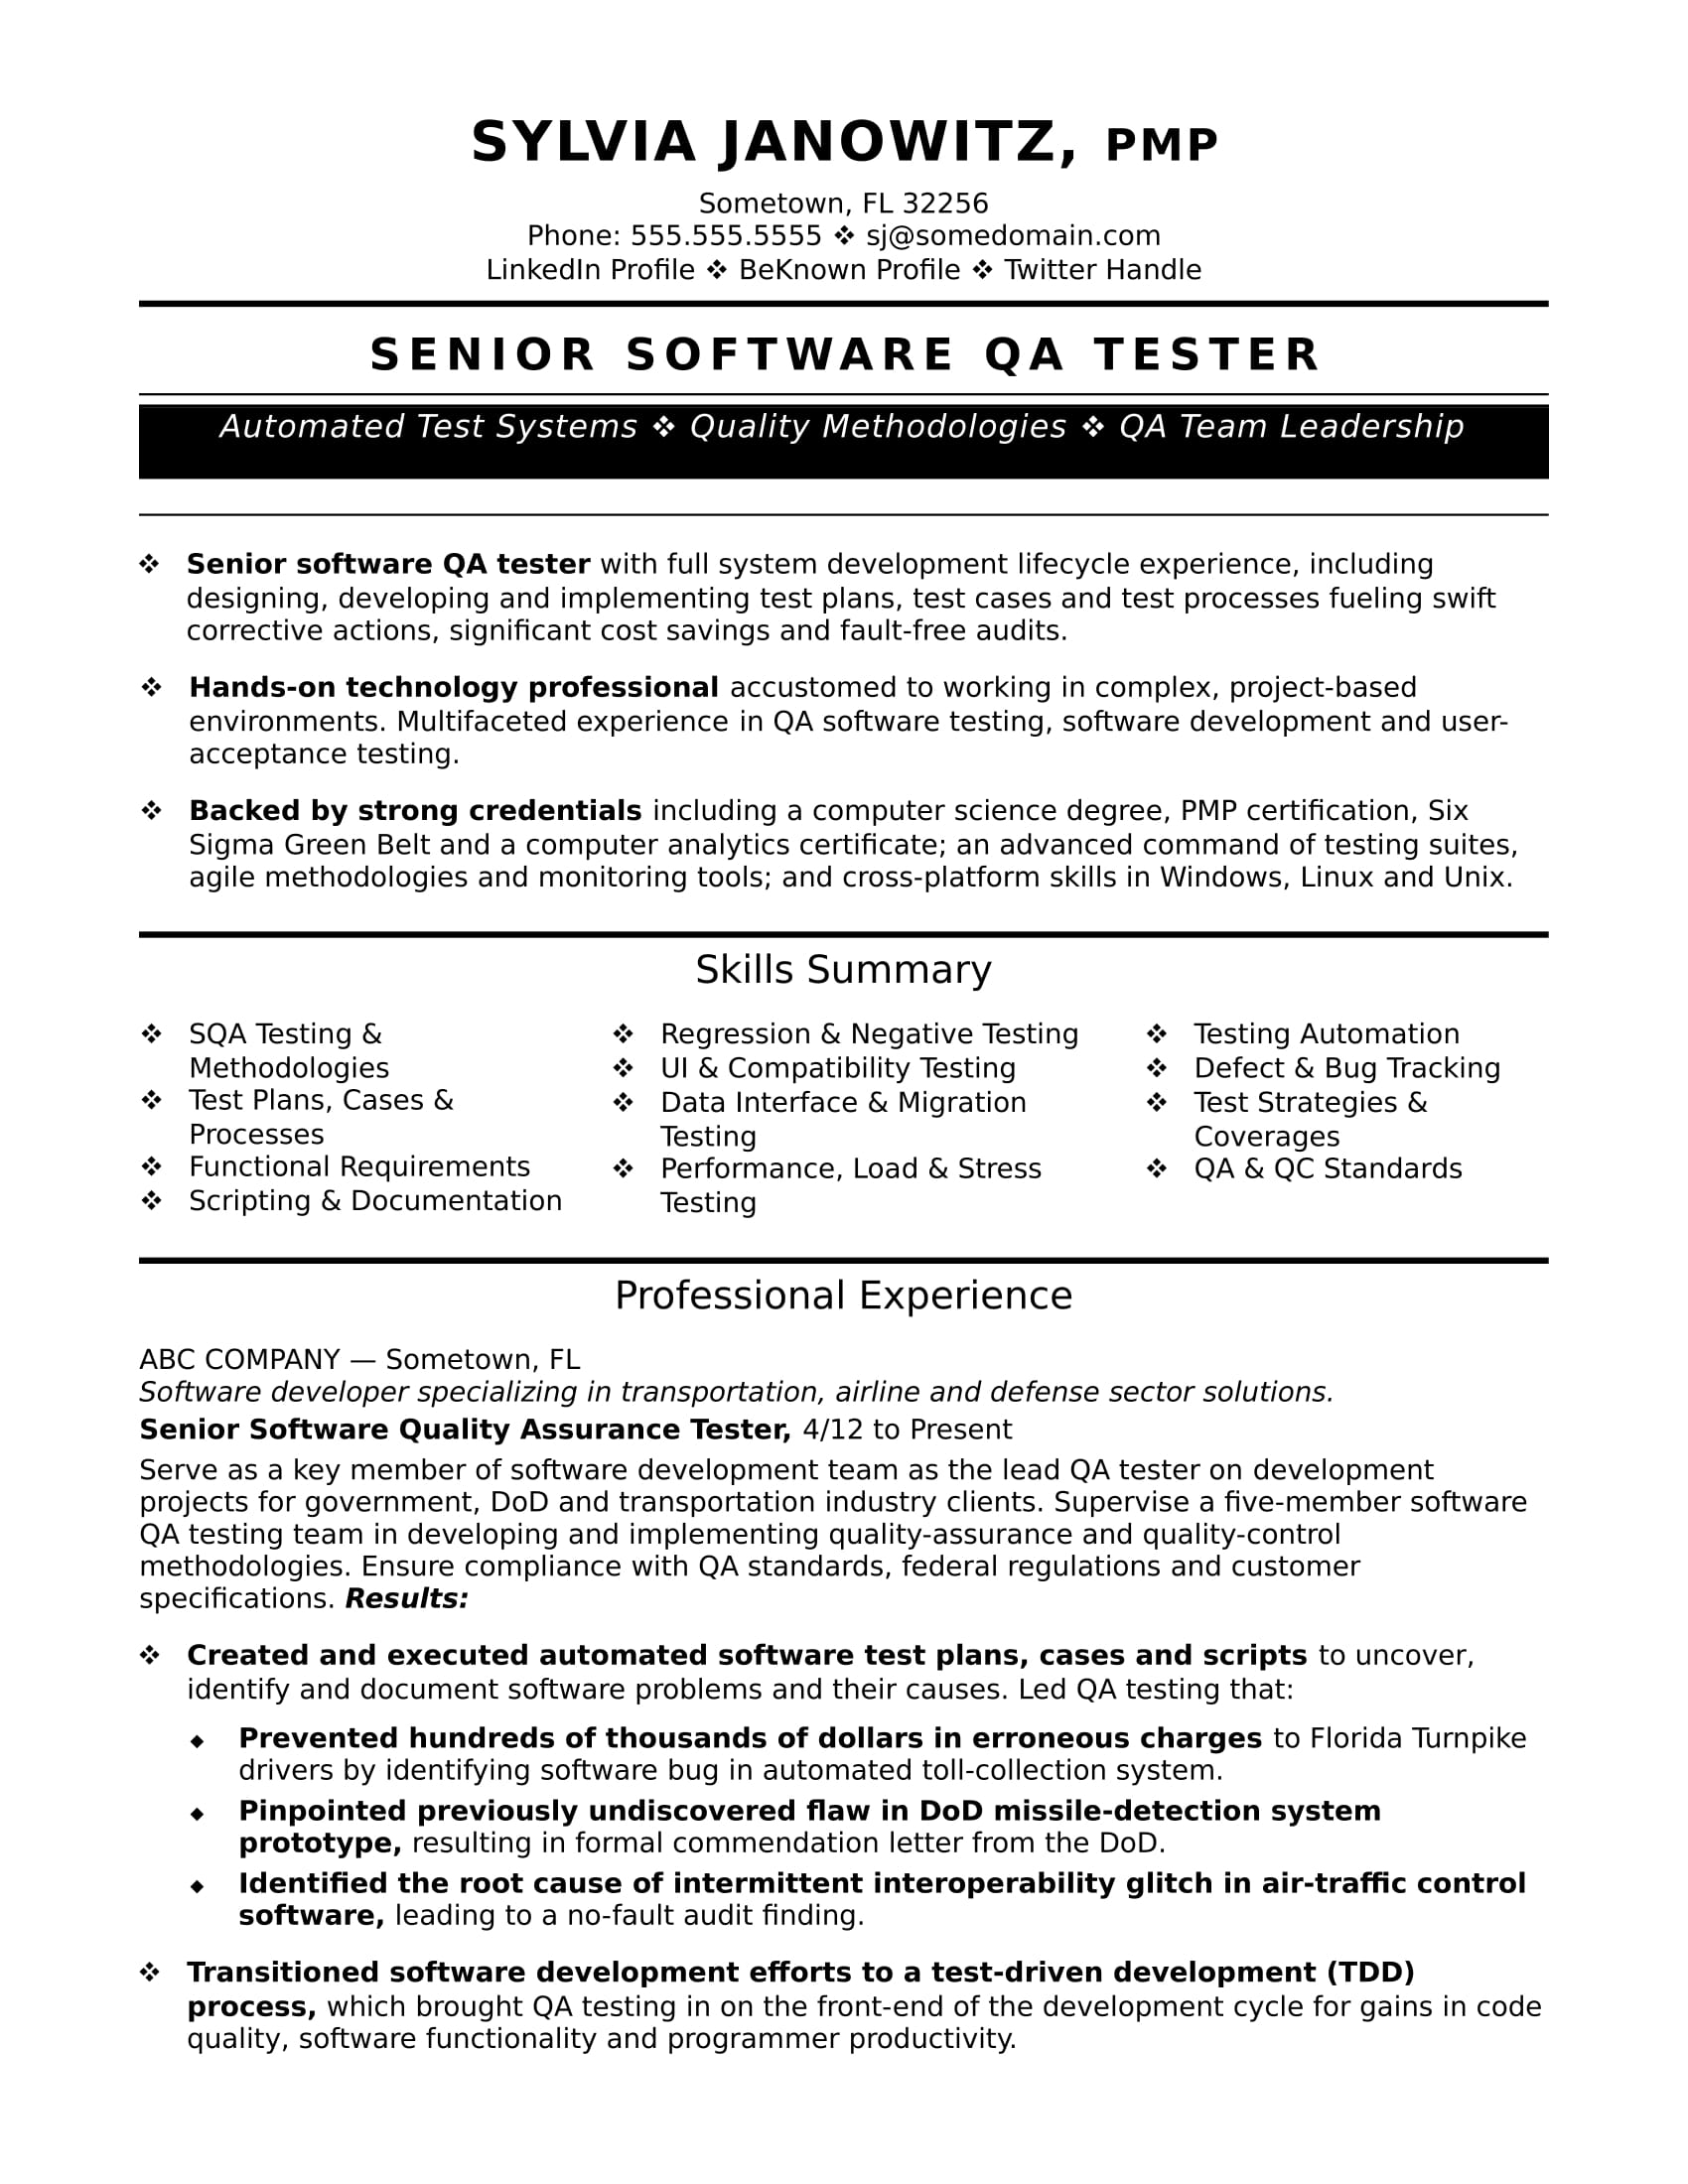 software test lead resumes